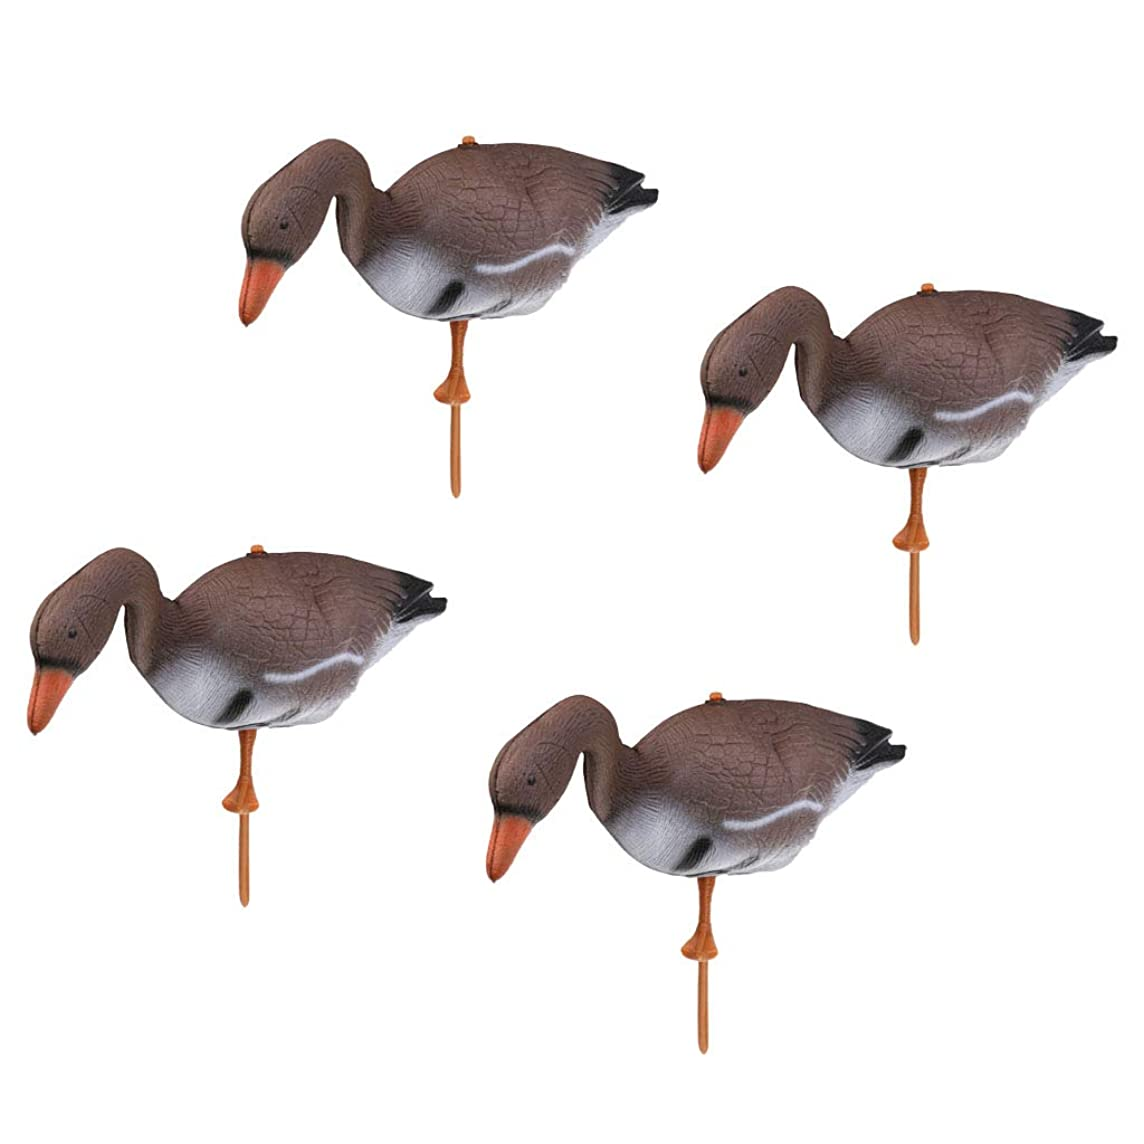 DYNWAVE Artificial Swan Decoy Pond Decoration Floating Ornamental Bird Garden Yard Scarecrow, Pack of 4